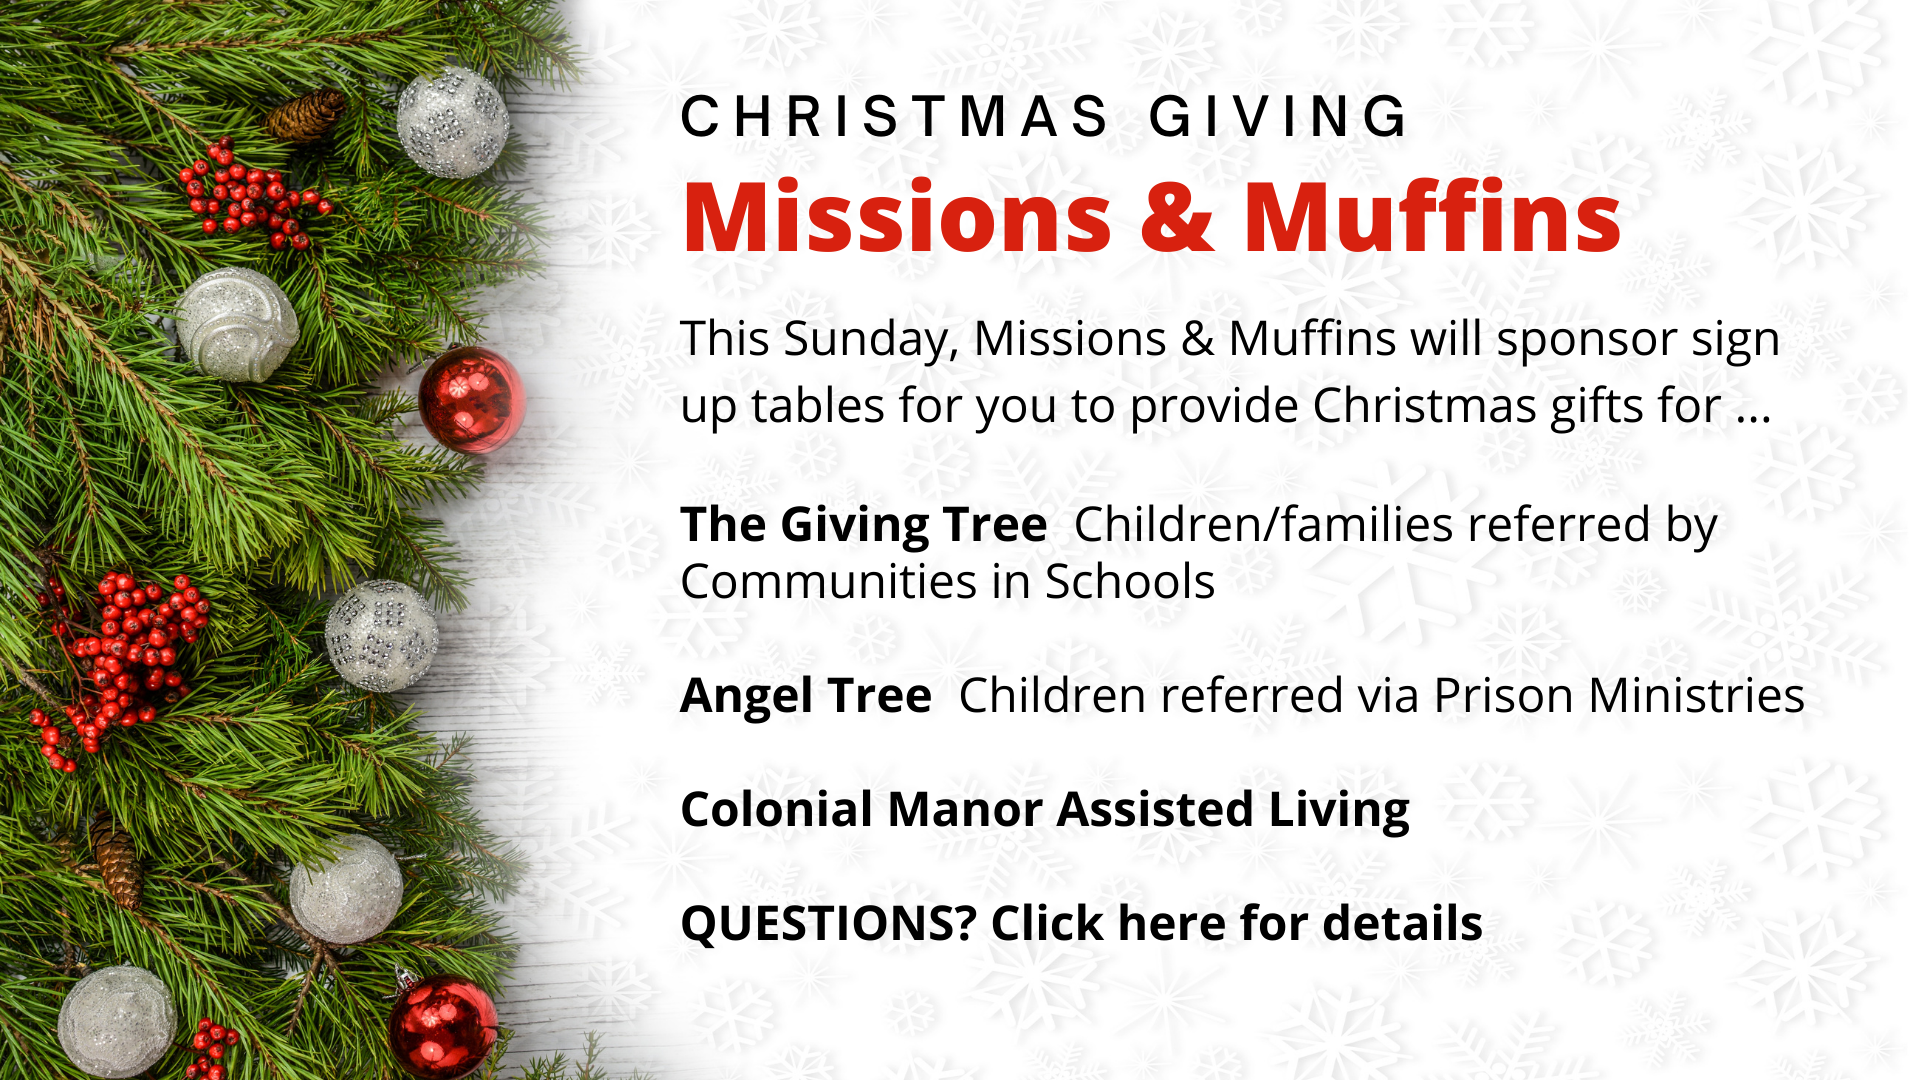 Missions & Muffins Christmas Giving